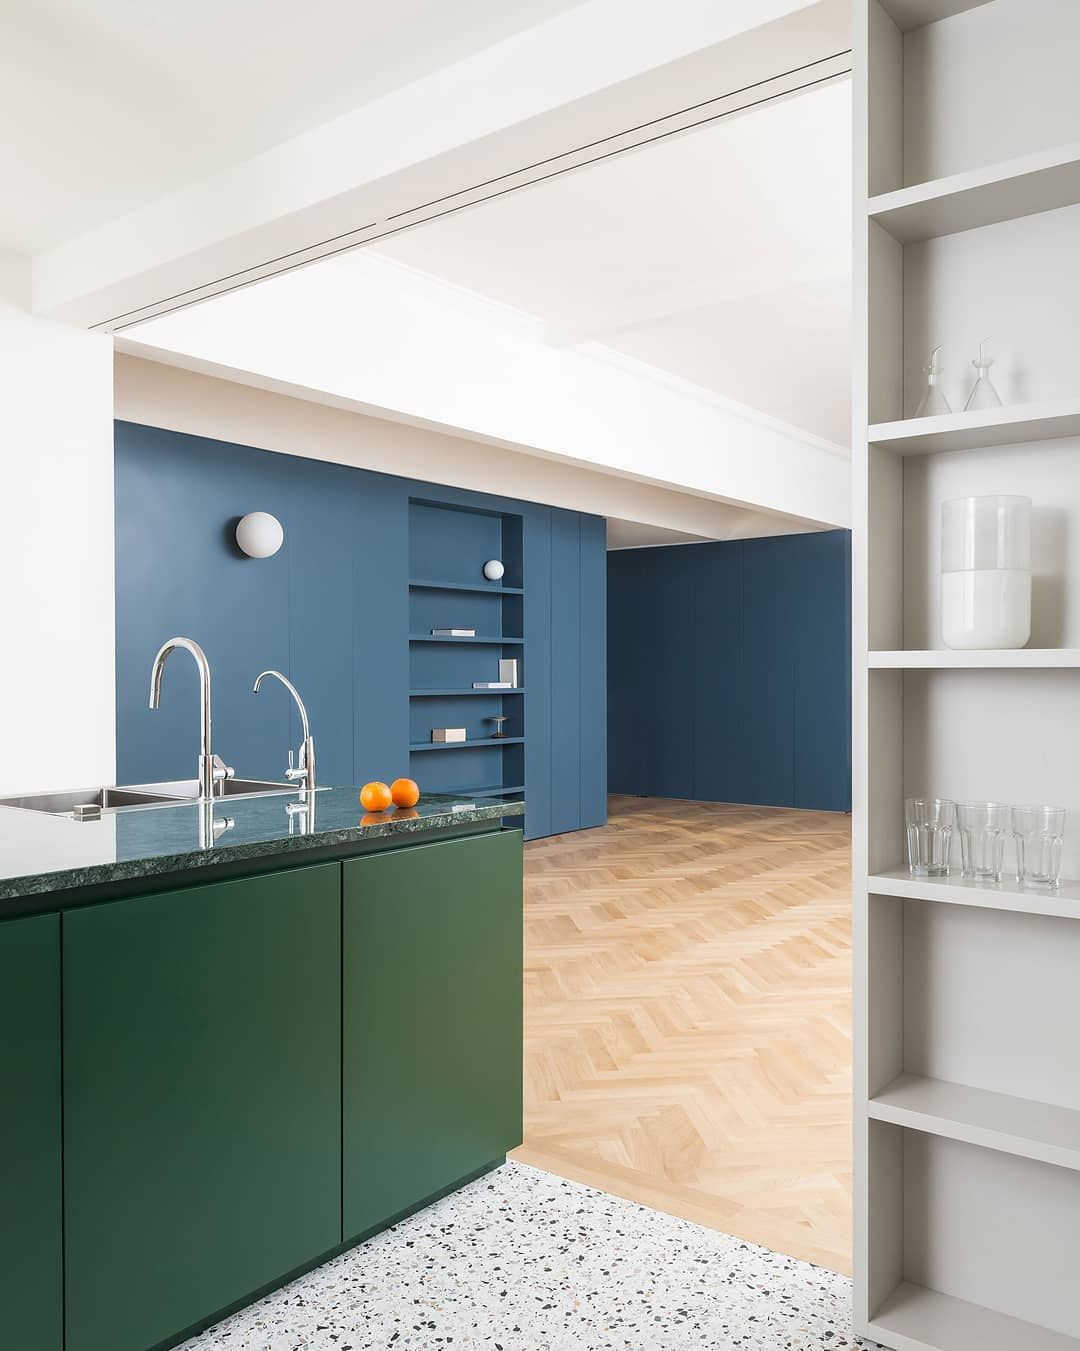 Interior Design For Apartment Kitchen: Penthouse Apartment Inside Milan's 1920s Ca' Brutta